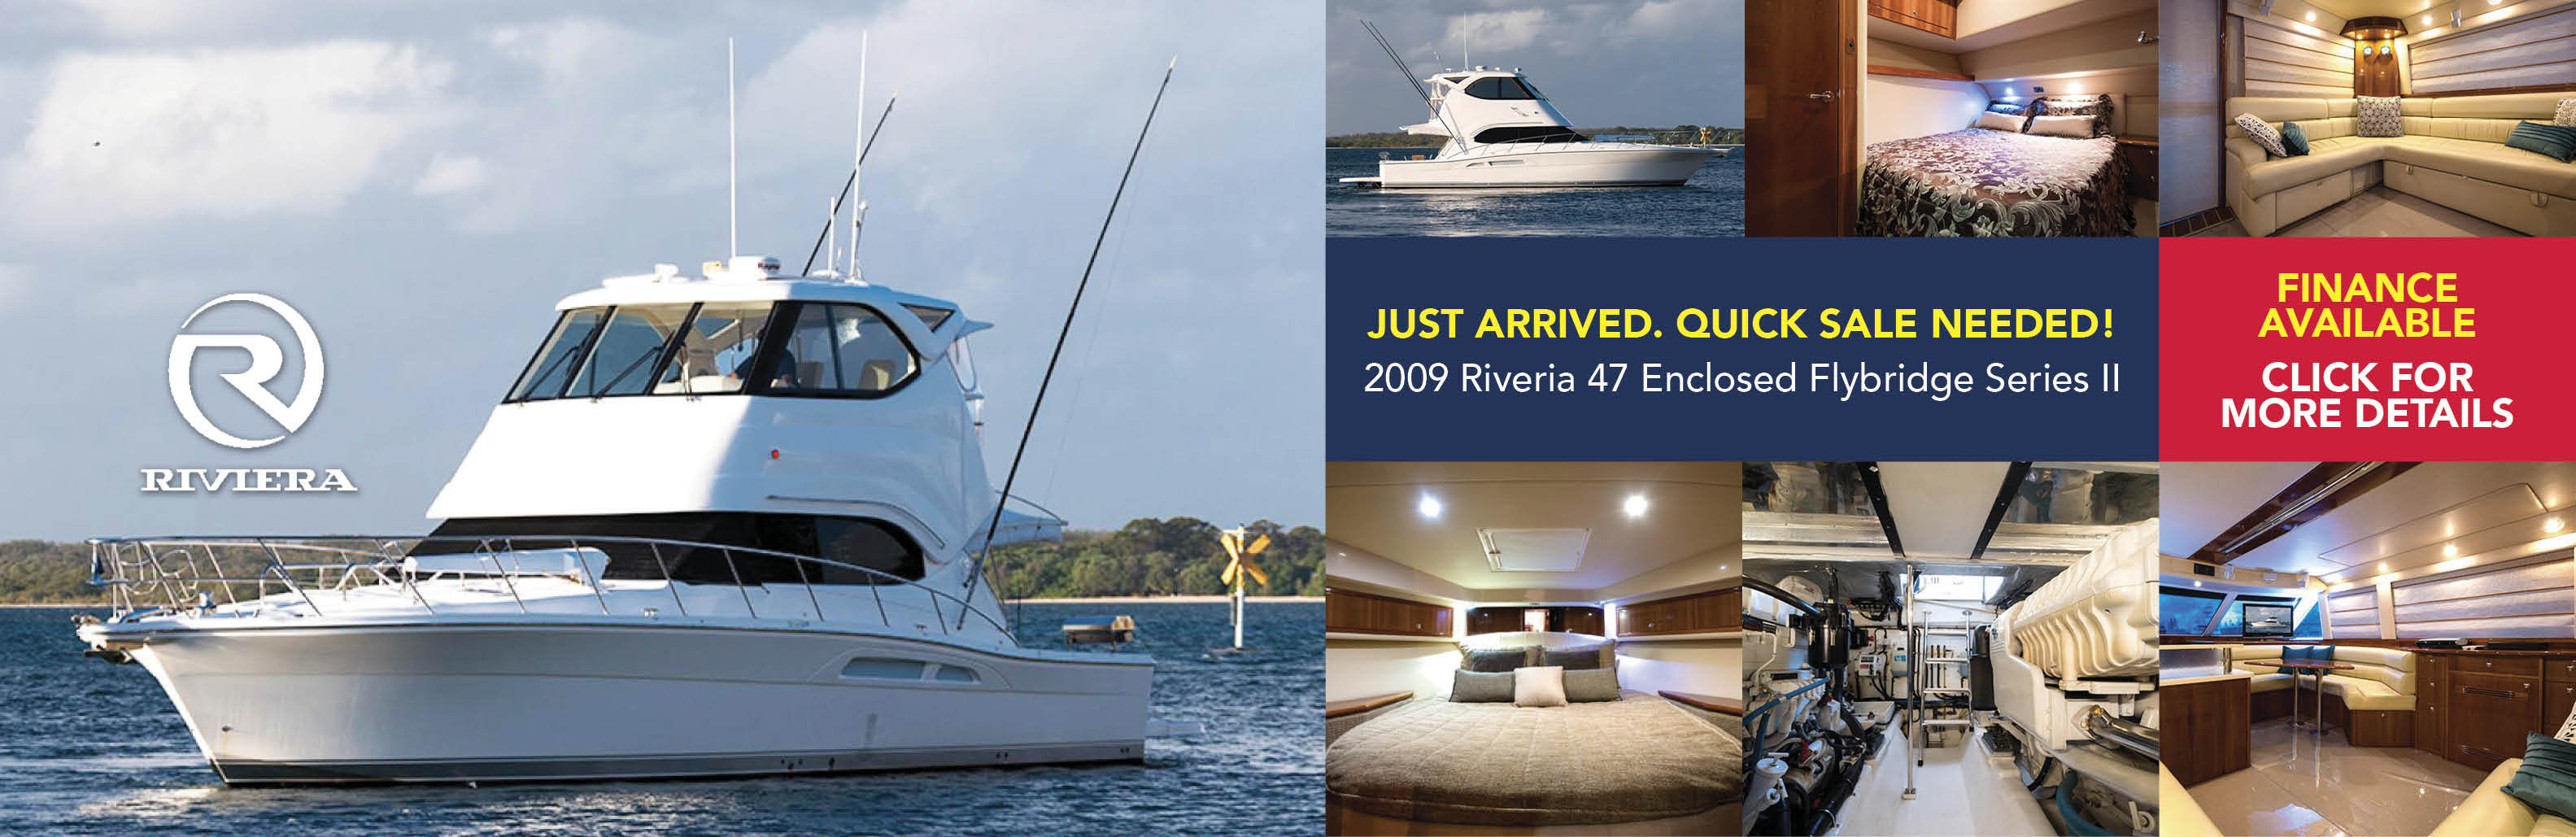 2009 Riviera 47 Enclosed Flybridge Series II - Click for More